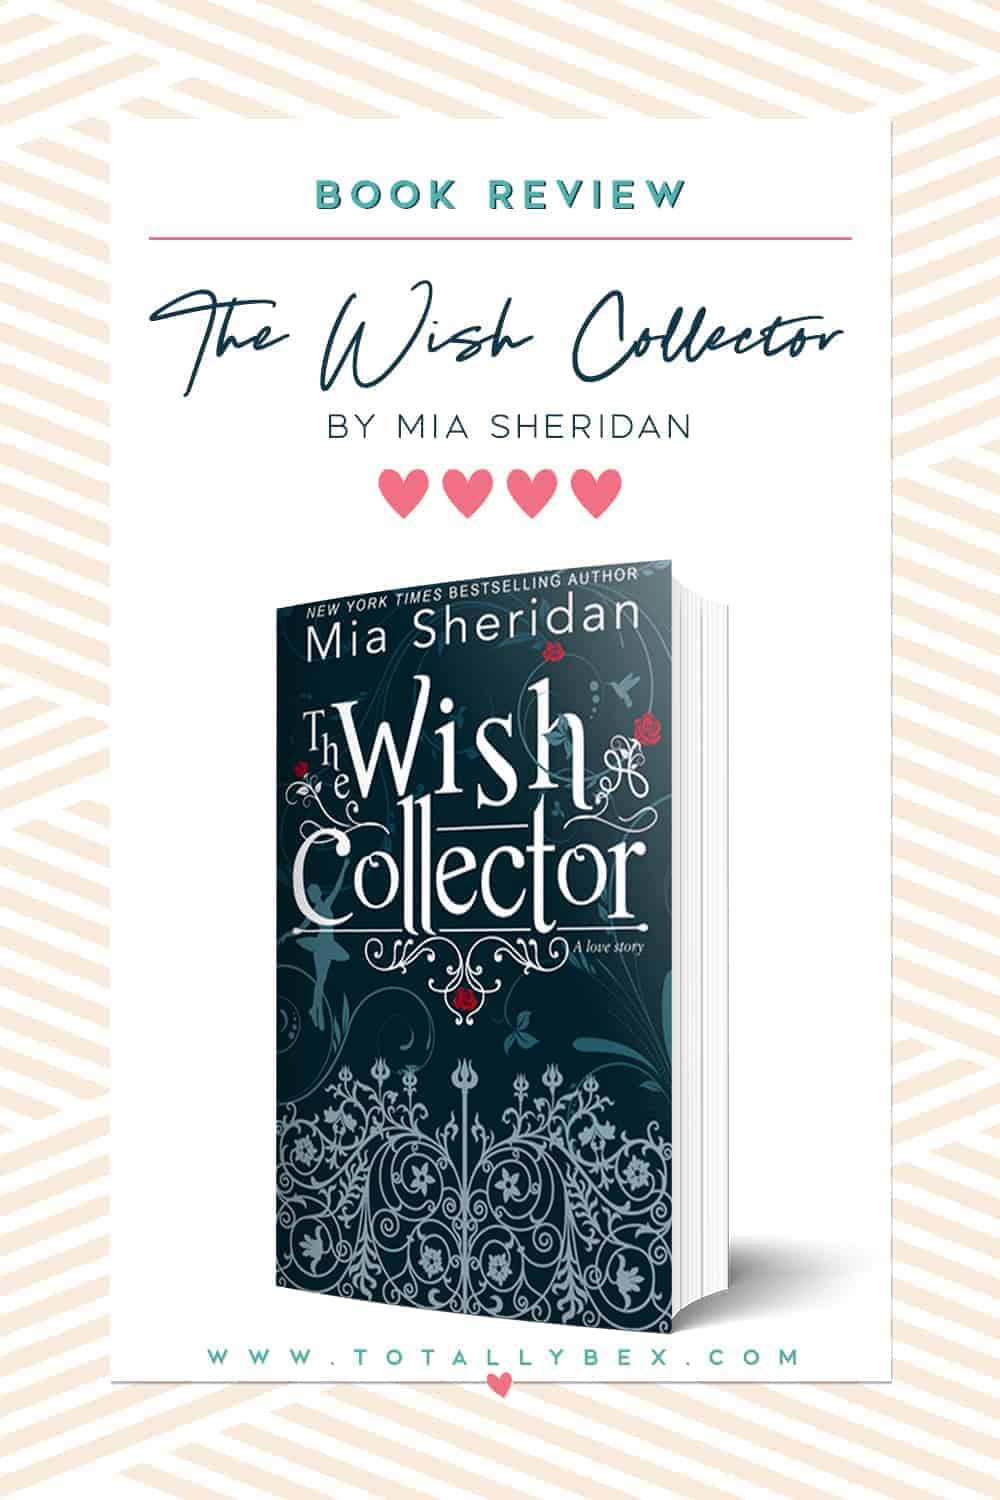 'The Wish Collector' by Mia Sheridan — A Magical and Beautiful Love Story